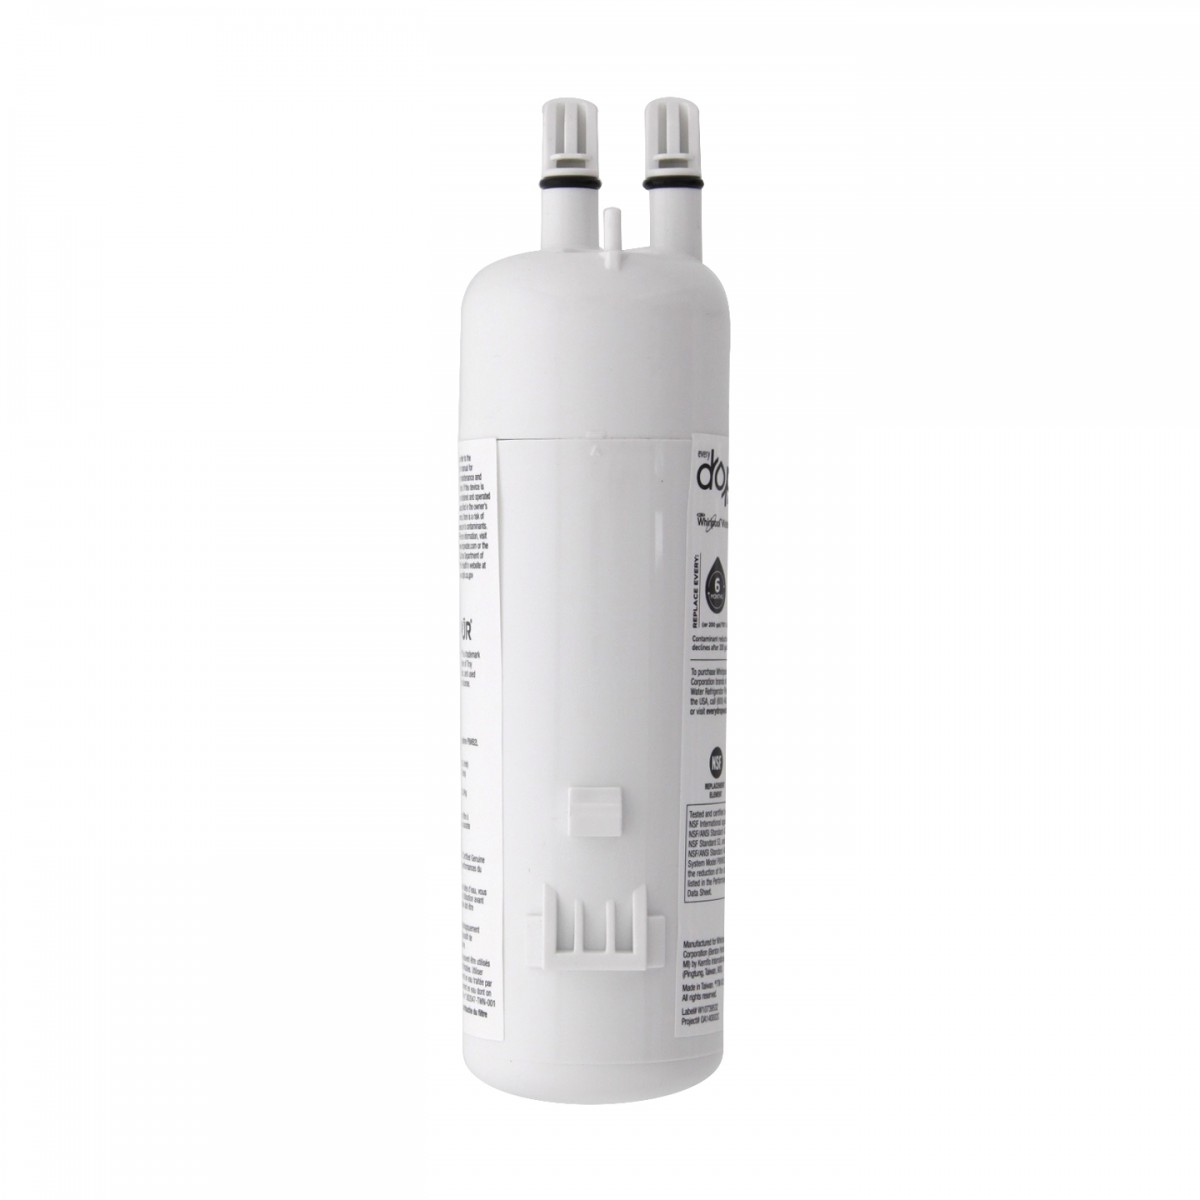 EveryDrop Whirlpool Ice and Water Refrigerator Filter ...